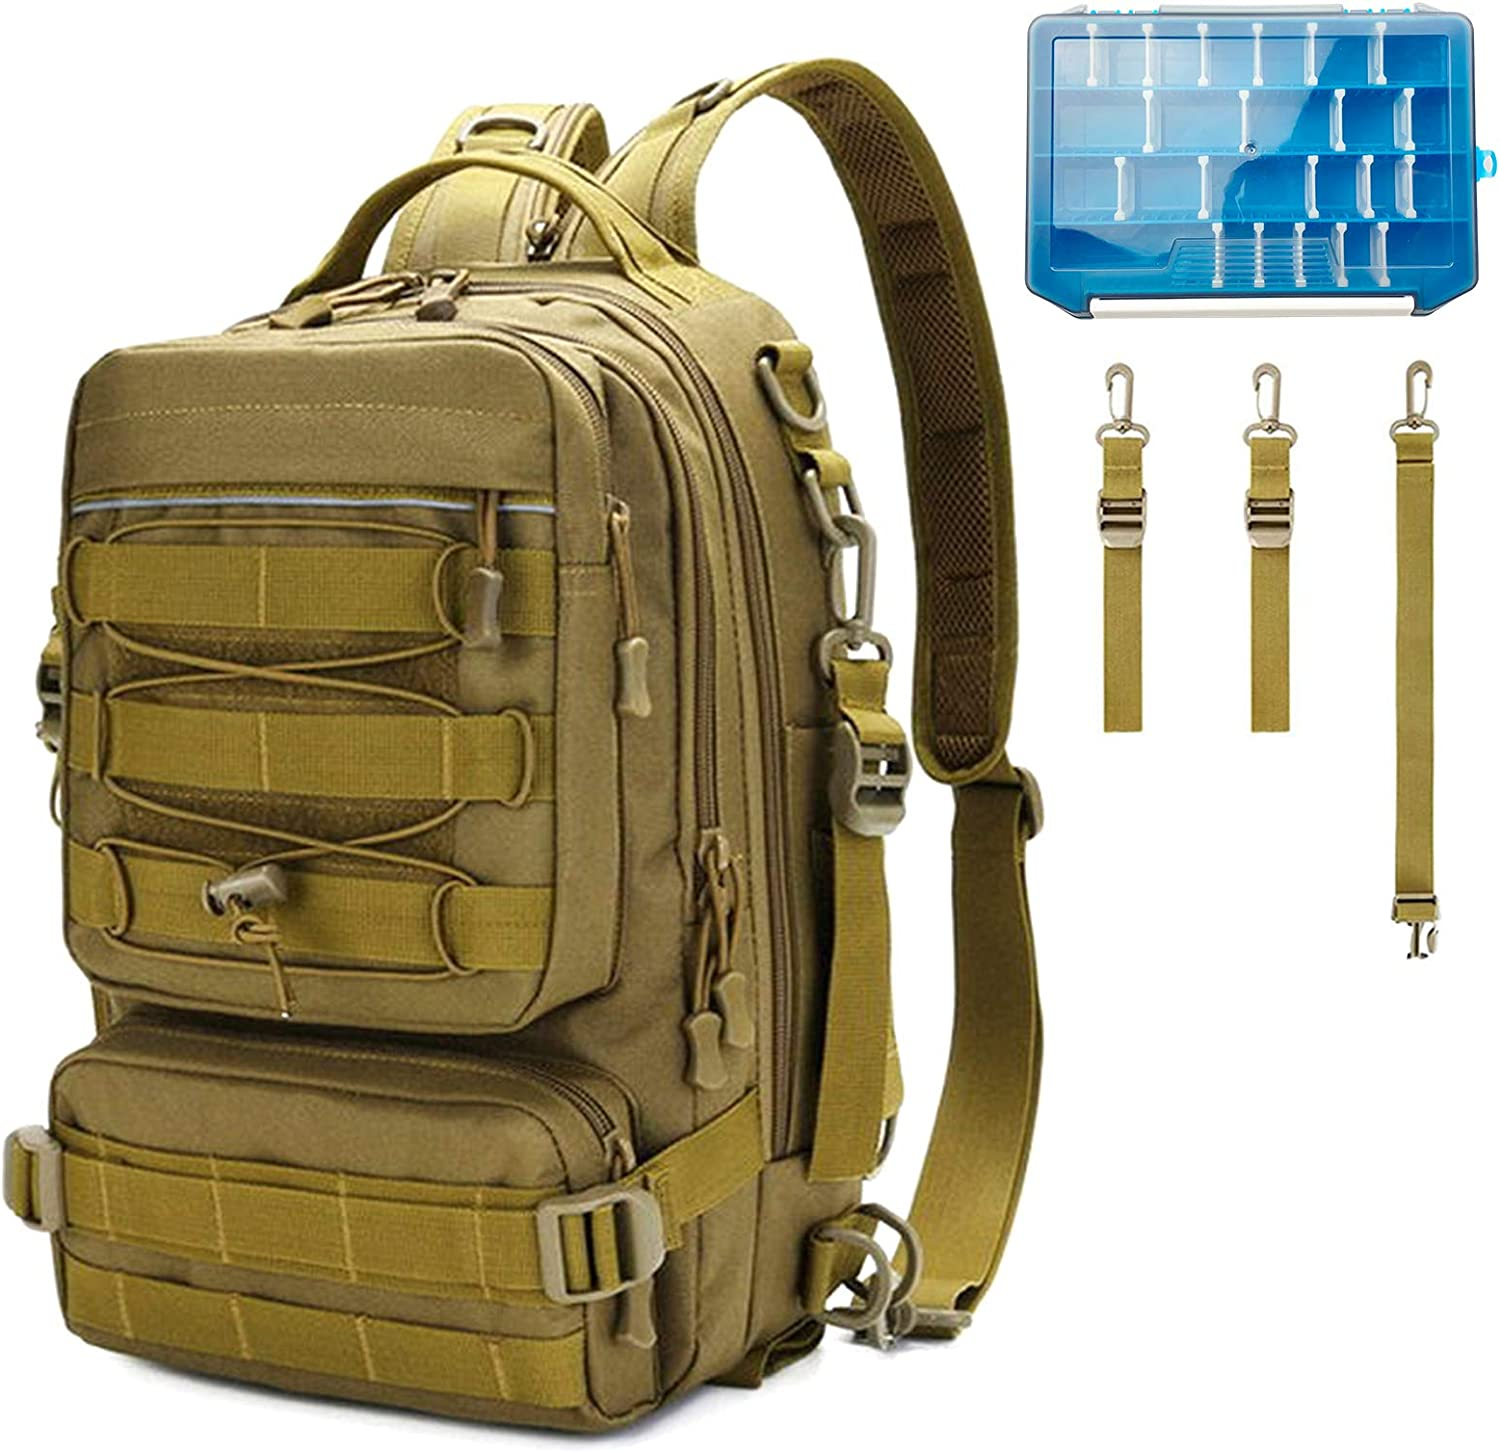 Outdoor Large Fishing Tackle Storage Gear Bag Thekuai Fishing Tackle Backpack Water-Resistant Fishing Backpack with Rod Holder Shoulder Backpack